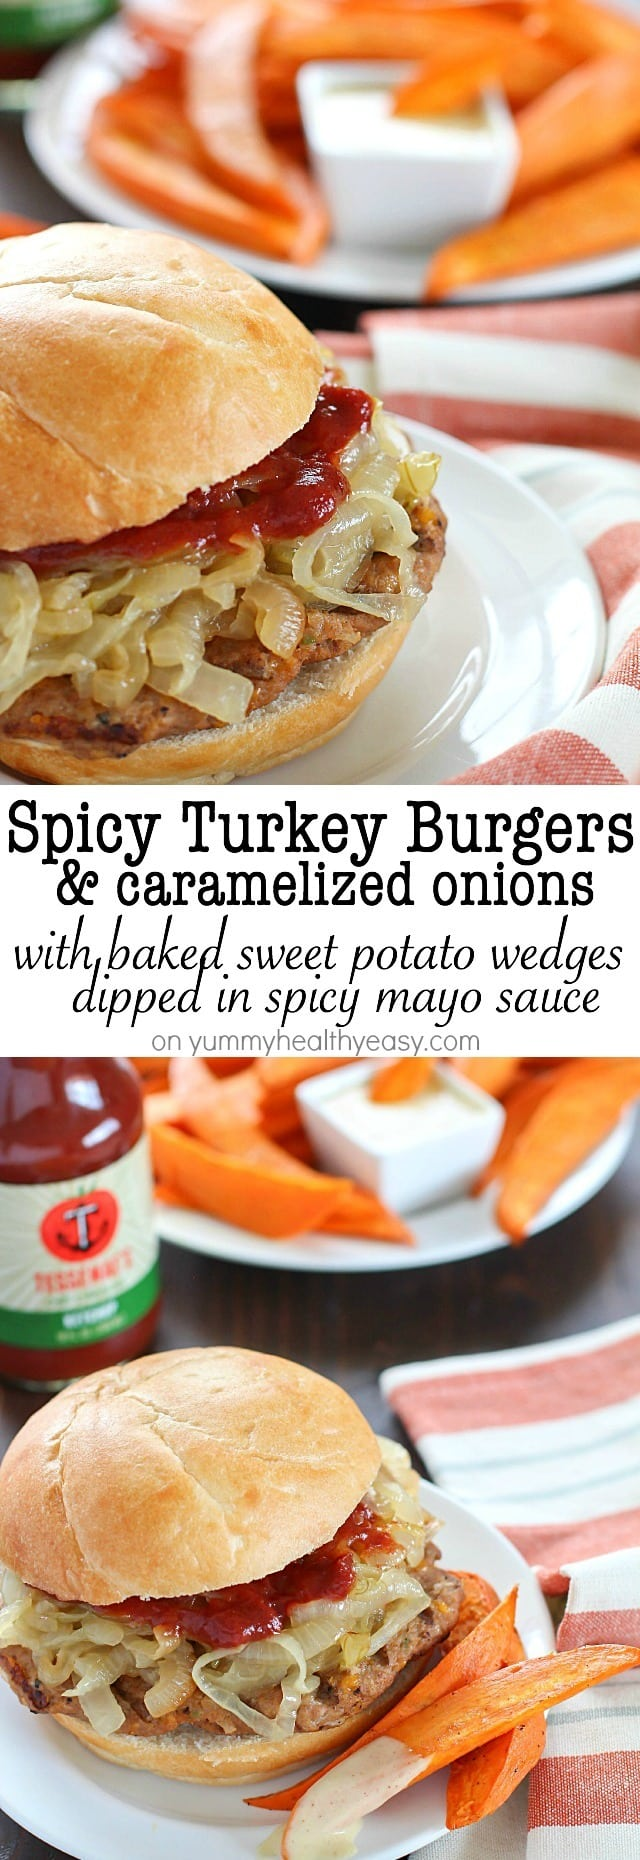 Spicy Turkey Burgers with Caramelized Onions & Sweet Potato Fries with ...